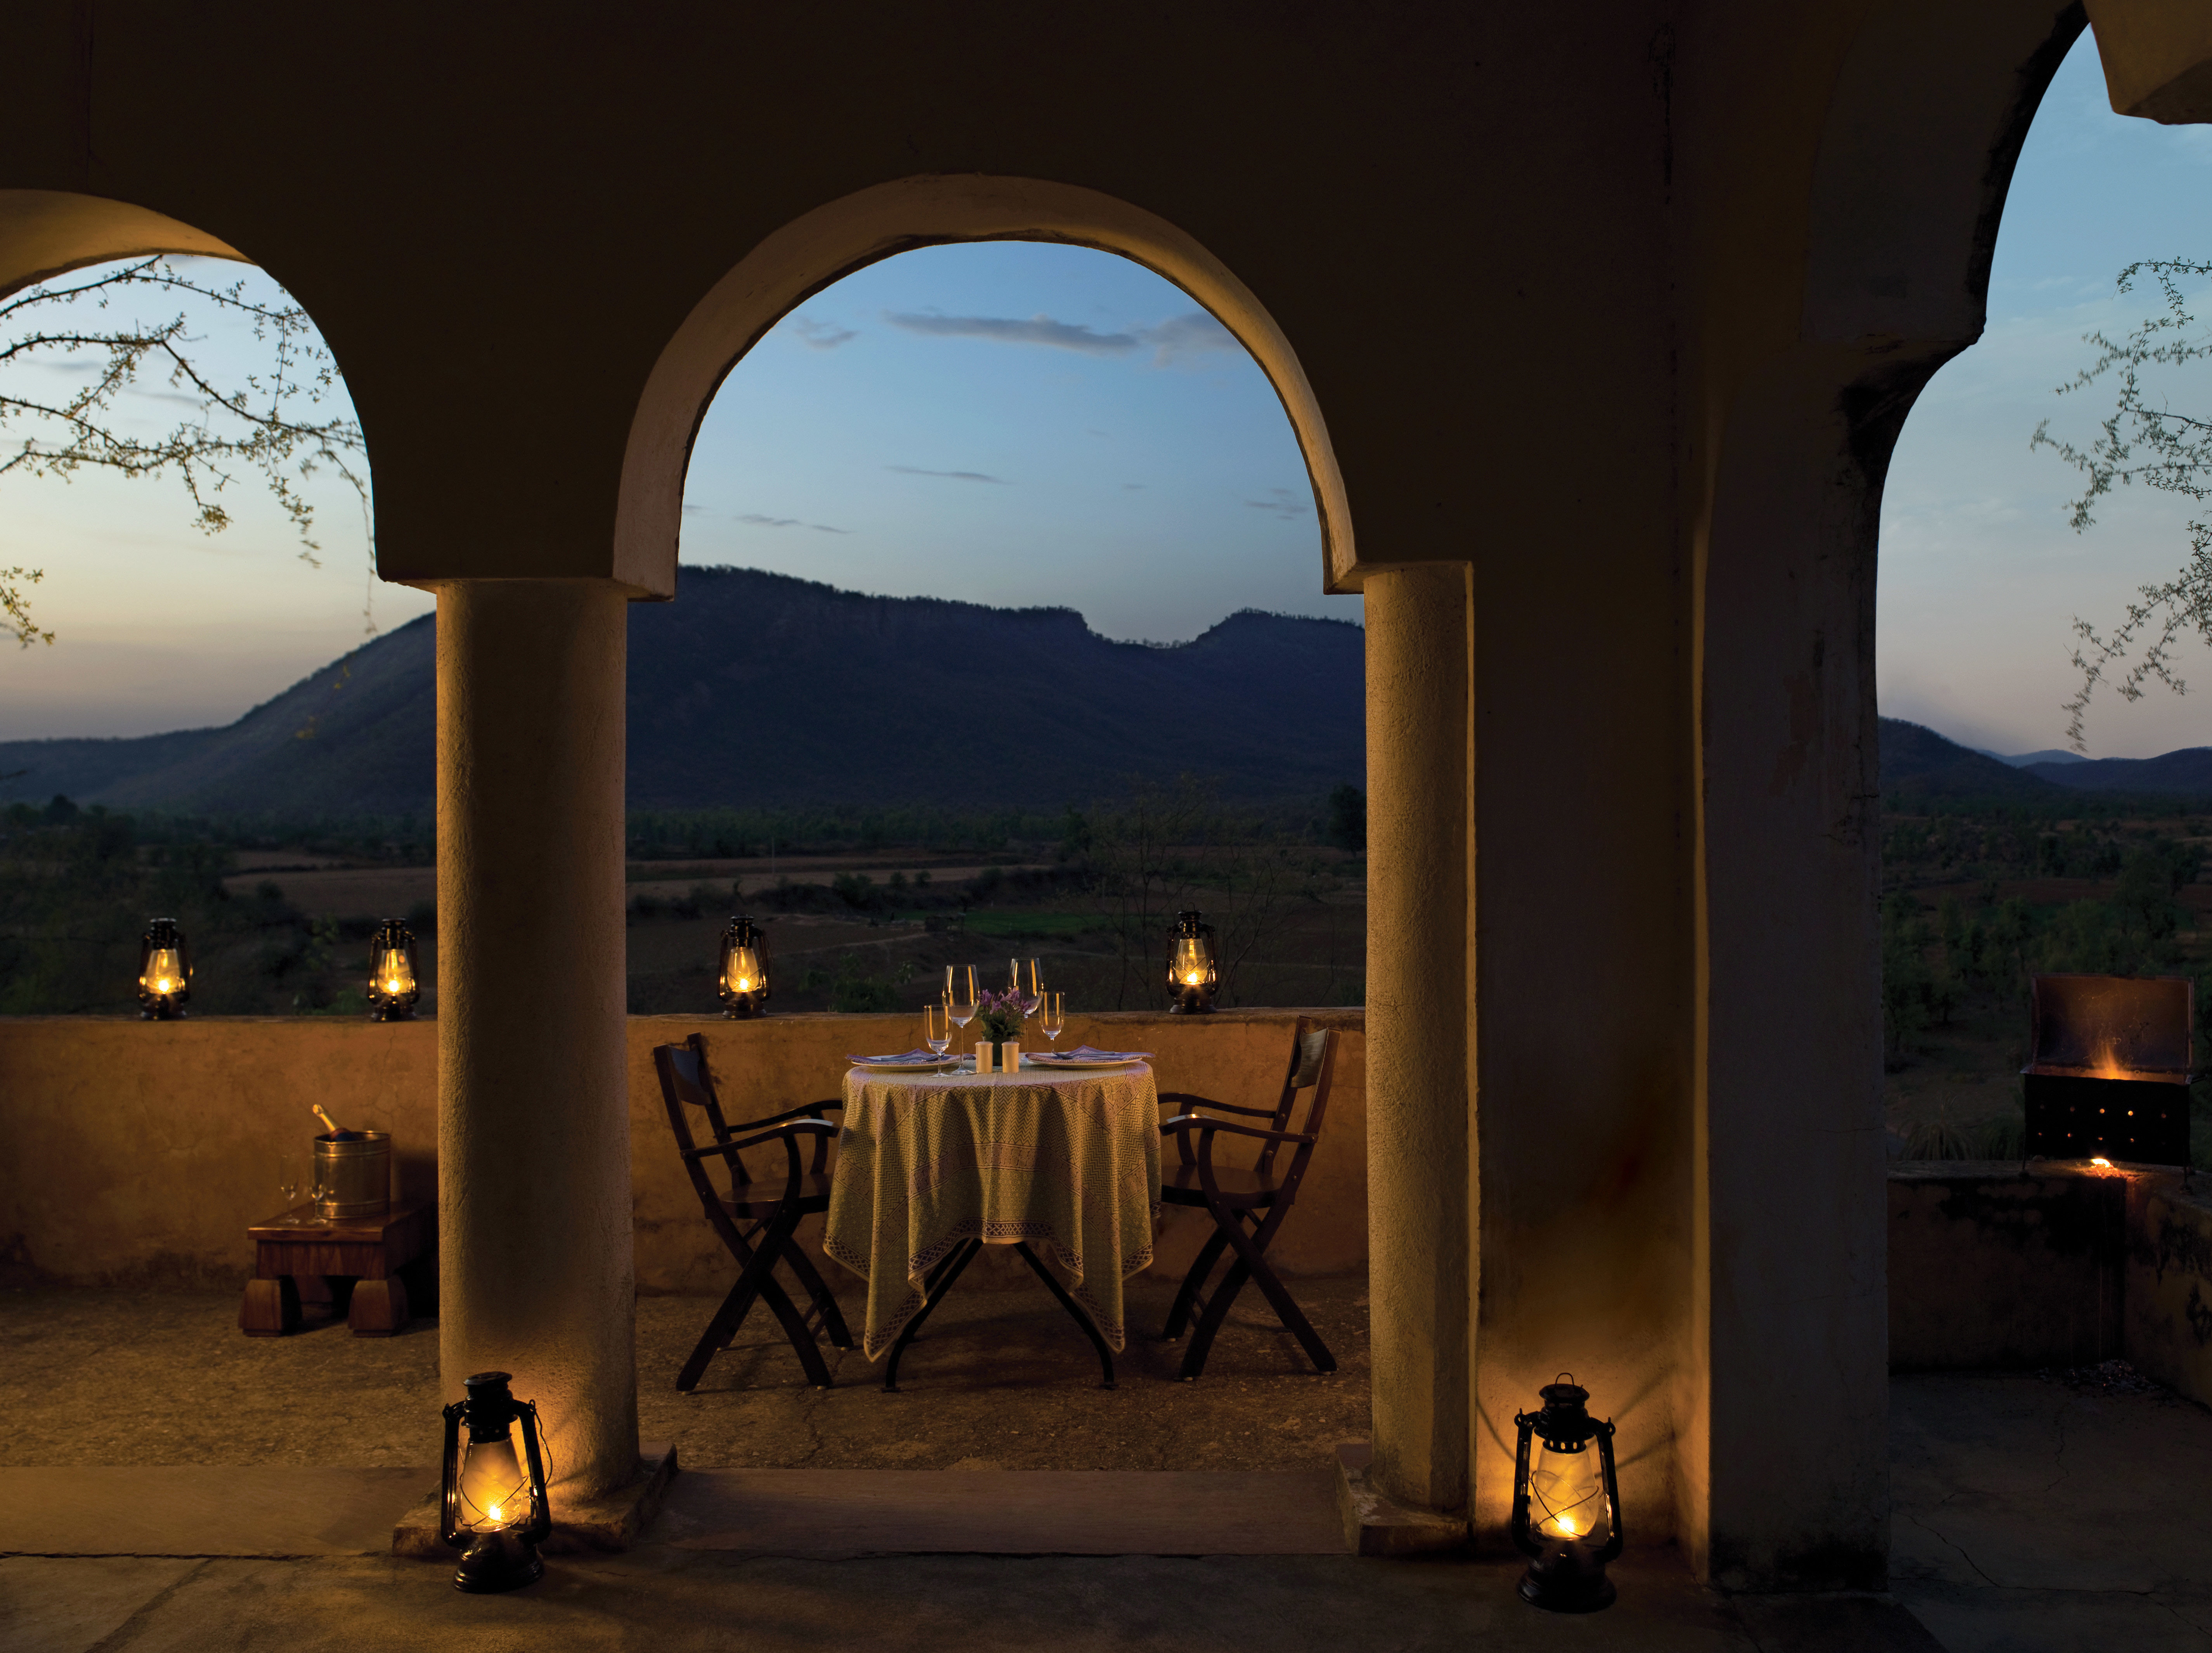 Dining Drink Eat Lodge Luxury Nightlife Scenic views arch Architecture night lighting evening ancient history temple hacienda